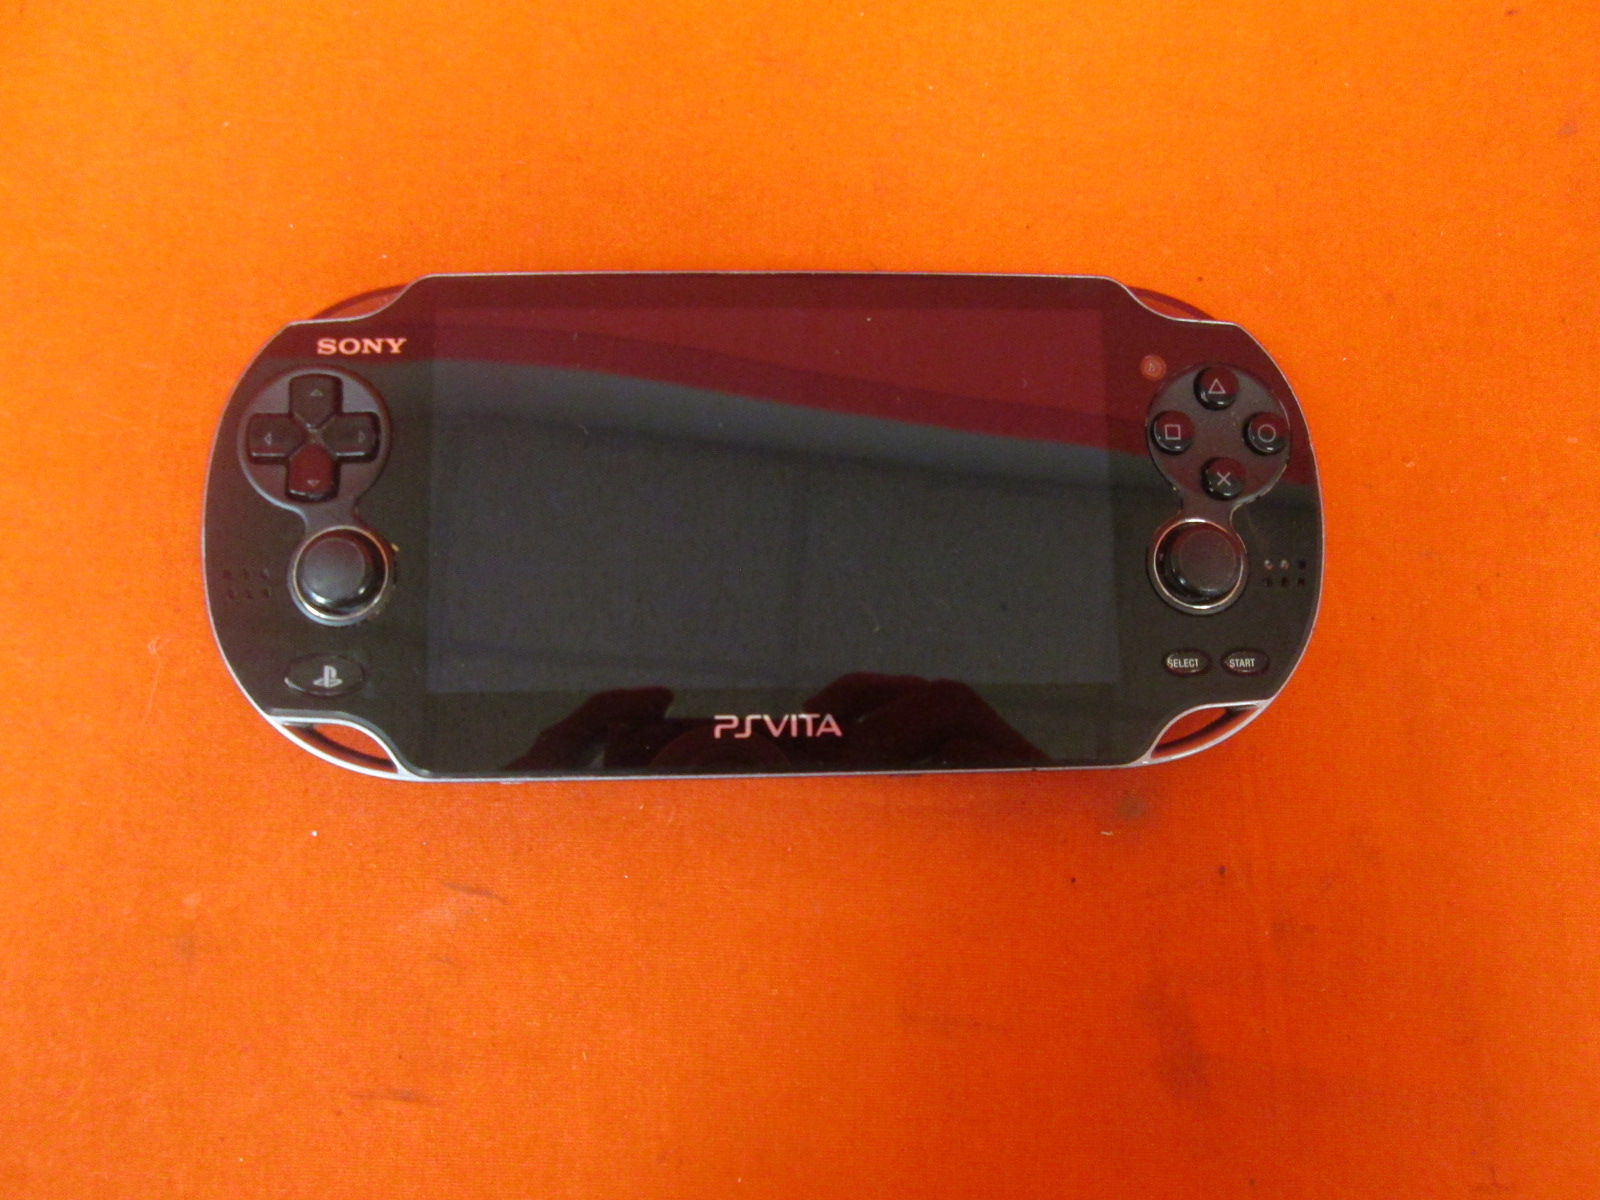 Image 0 of Sony PlayStation Vita 1000 Handheld Portable video game system